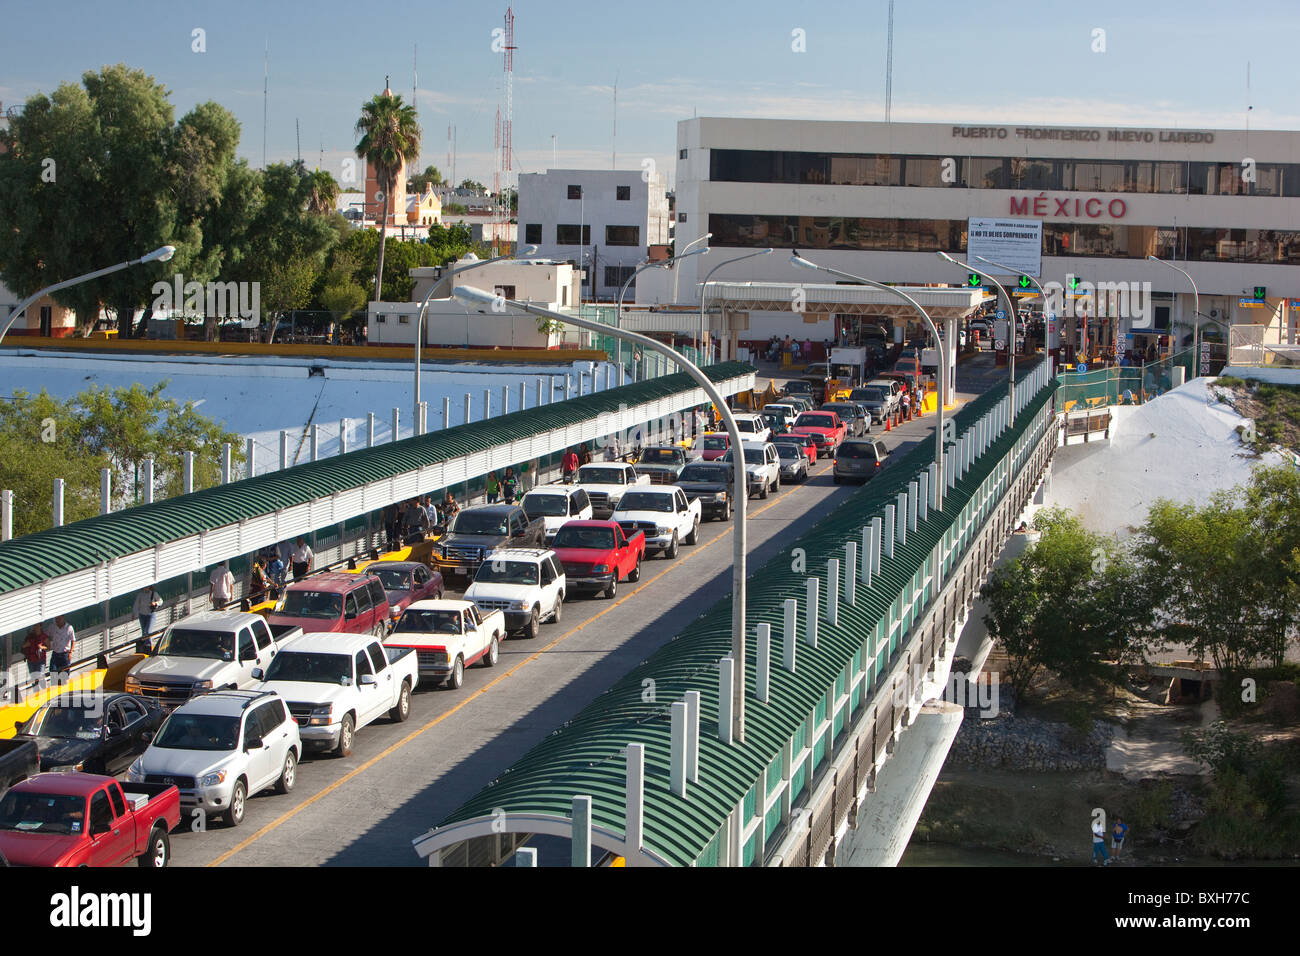 Cars headed from Mexico towards United States customs